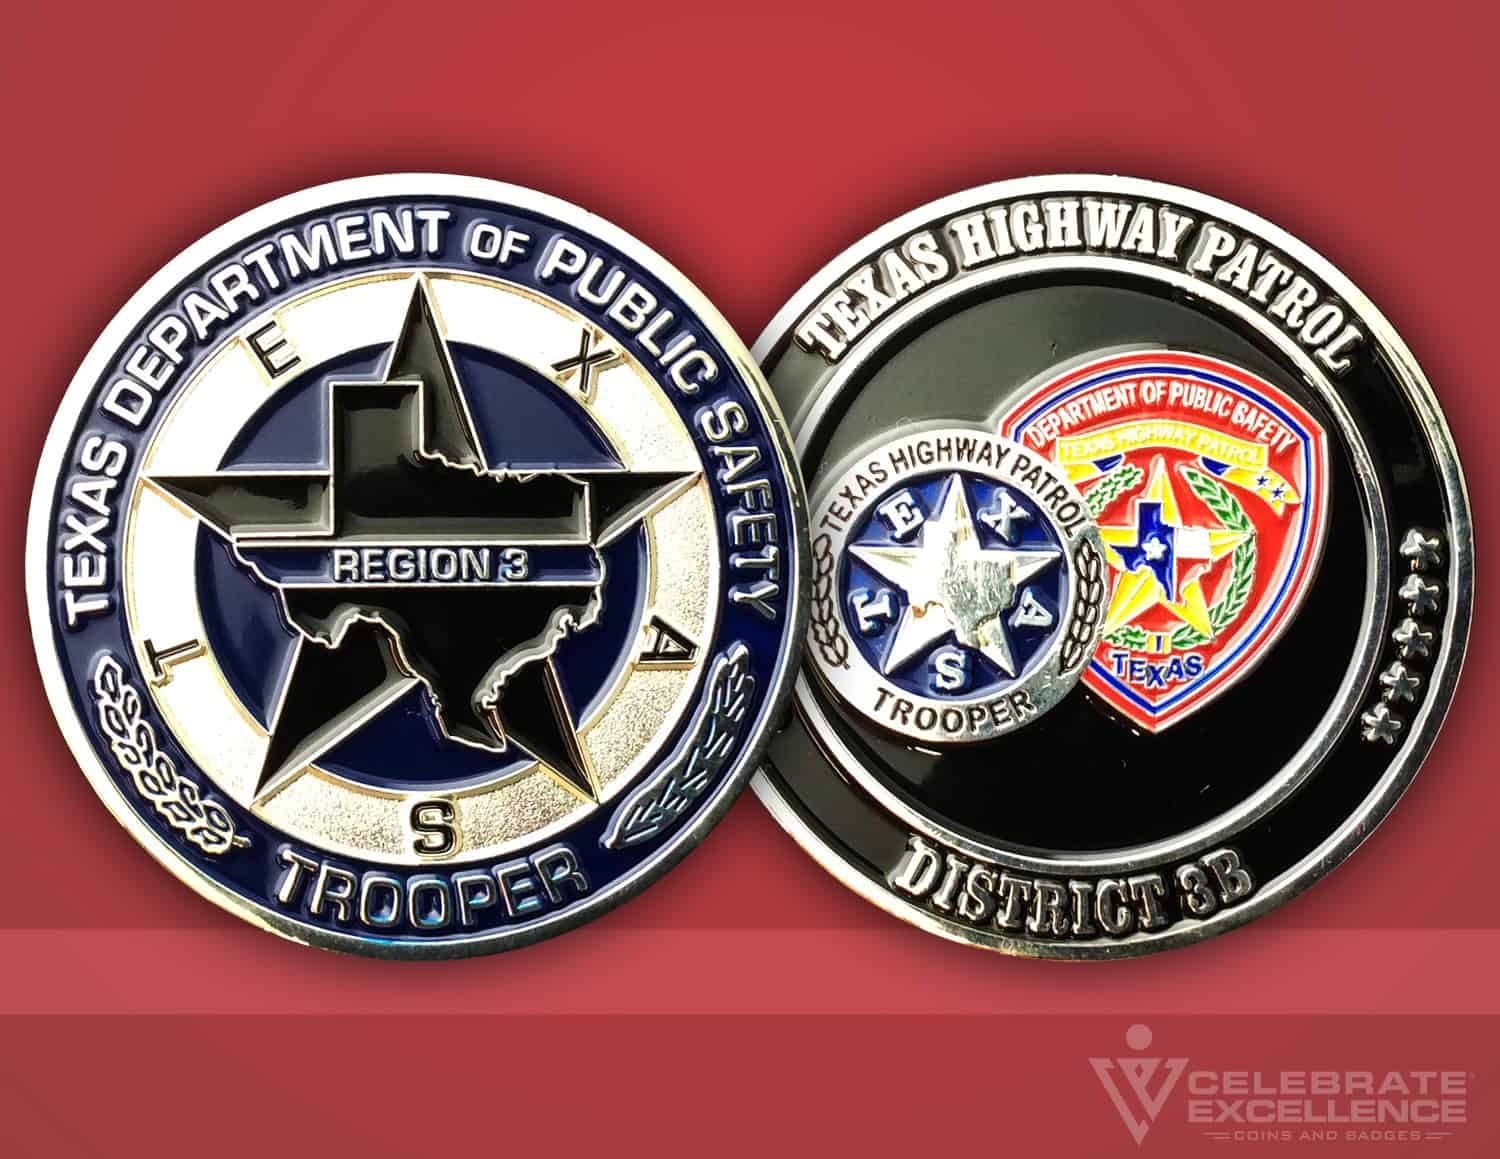 Celebrate Excellence Texas Highway Patrol Challenge Coin Showcase